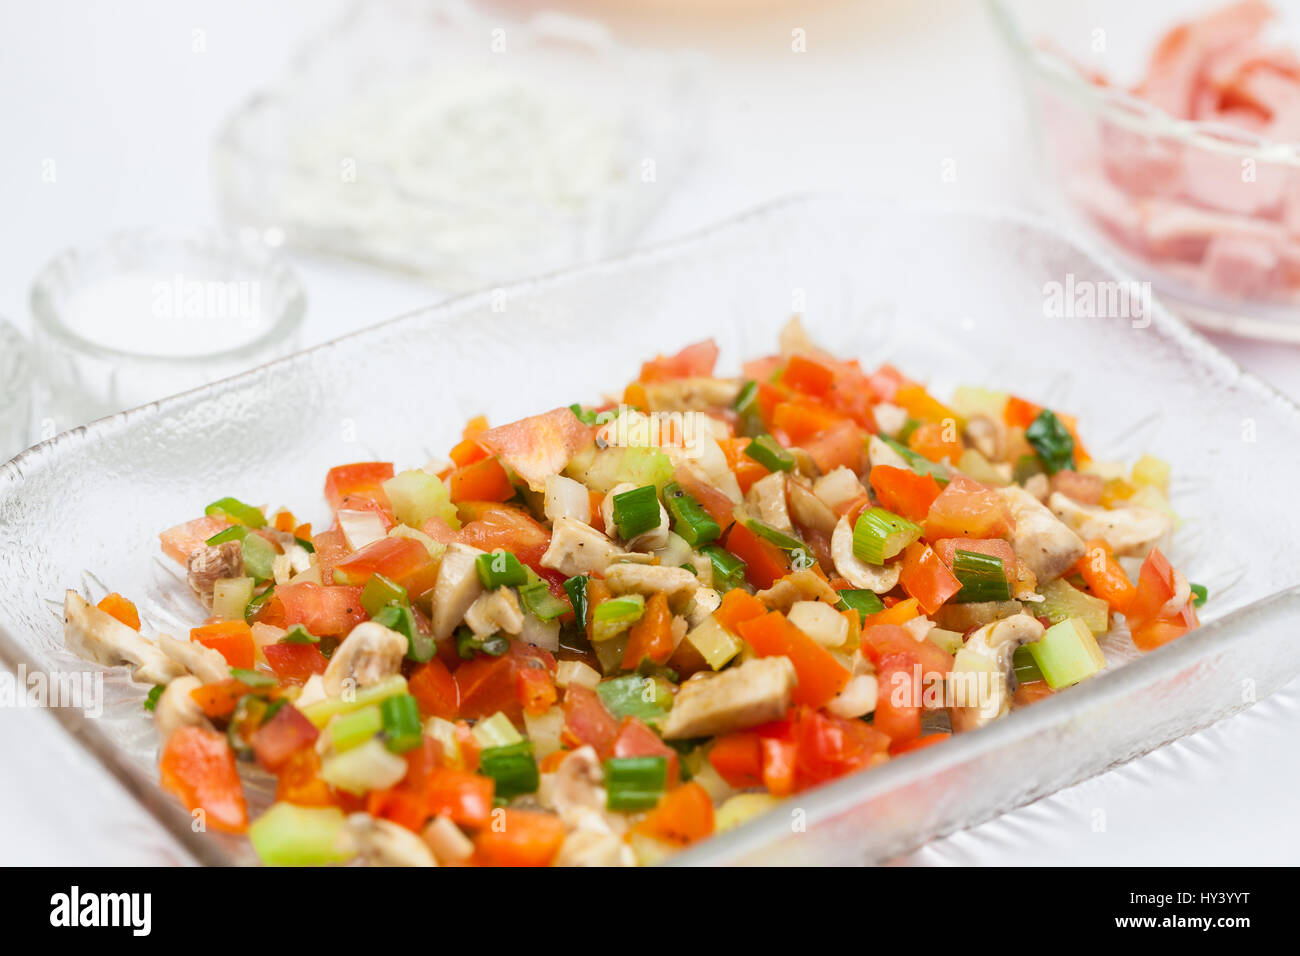 Omelet preparation : Freshly sauteed vegetables - Stock Image